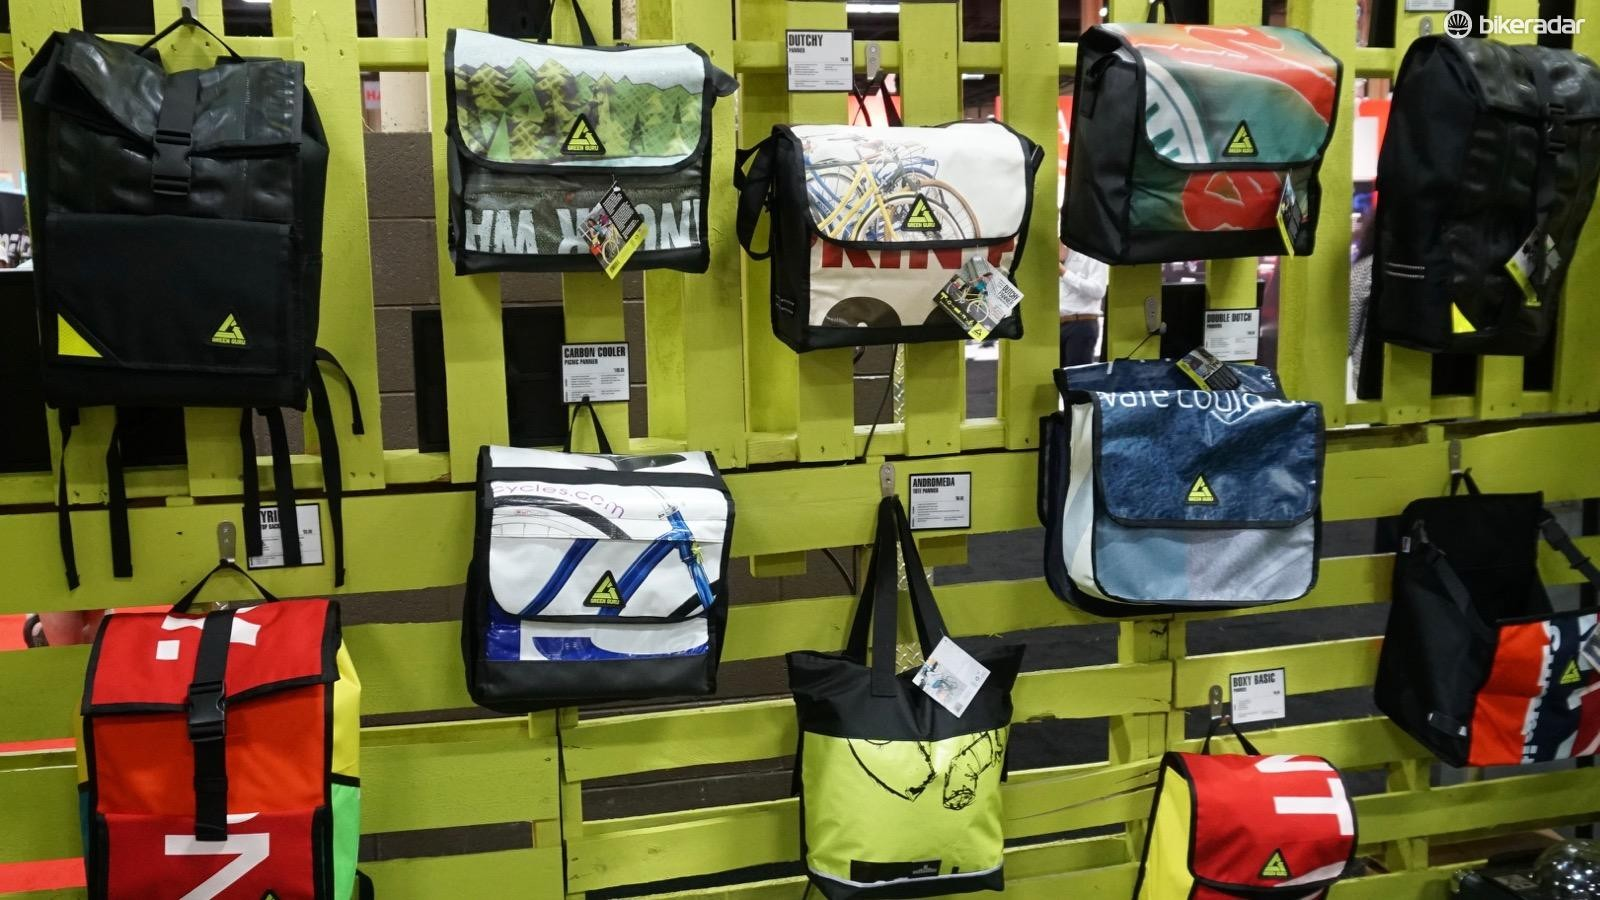 Last year after Interbike, Green Guru took the used signage from the exhibition hall and remade it into packs